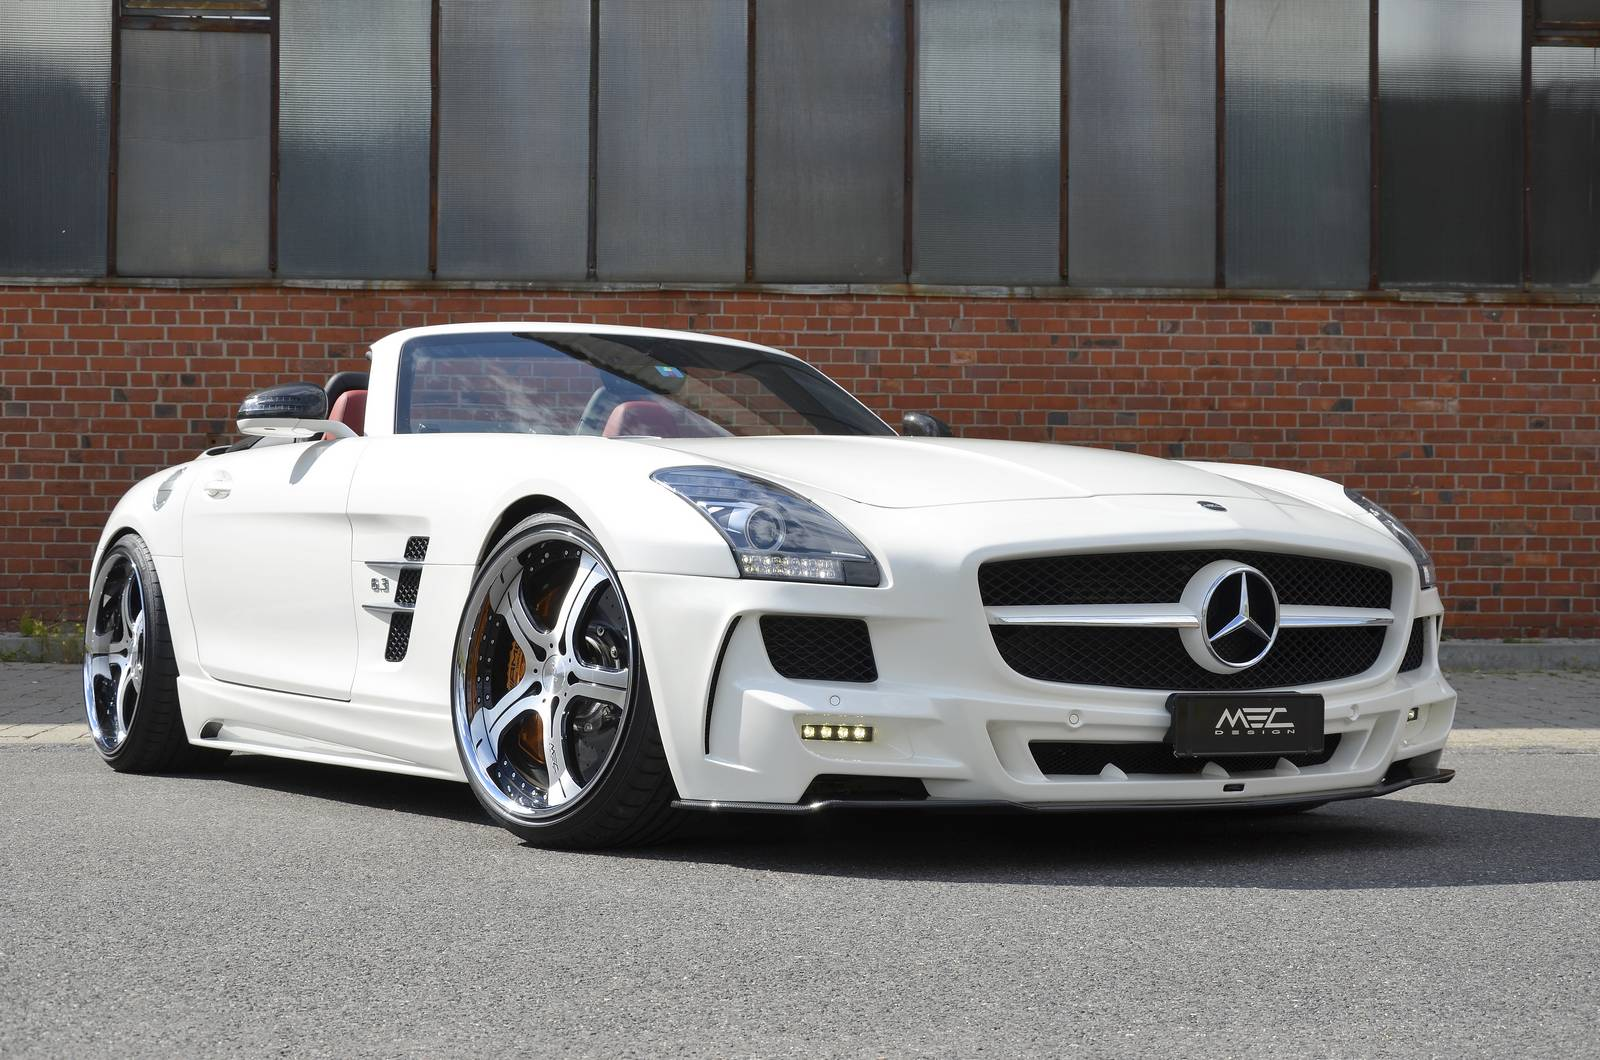 gallery mercedes benz sls amg roadster by mec design. Black Bedroom Furniture Sets. Home Design Ideas